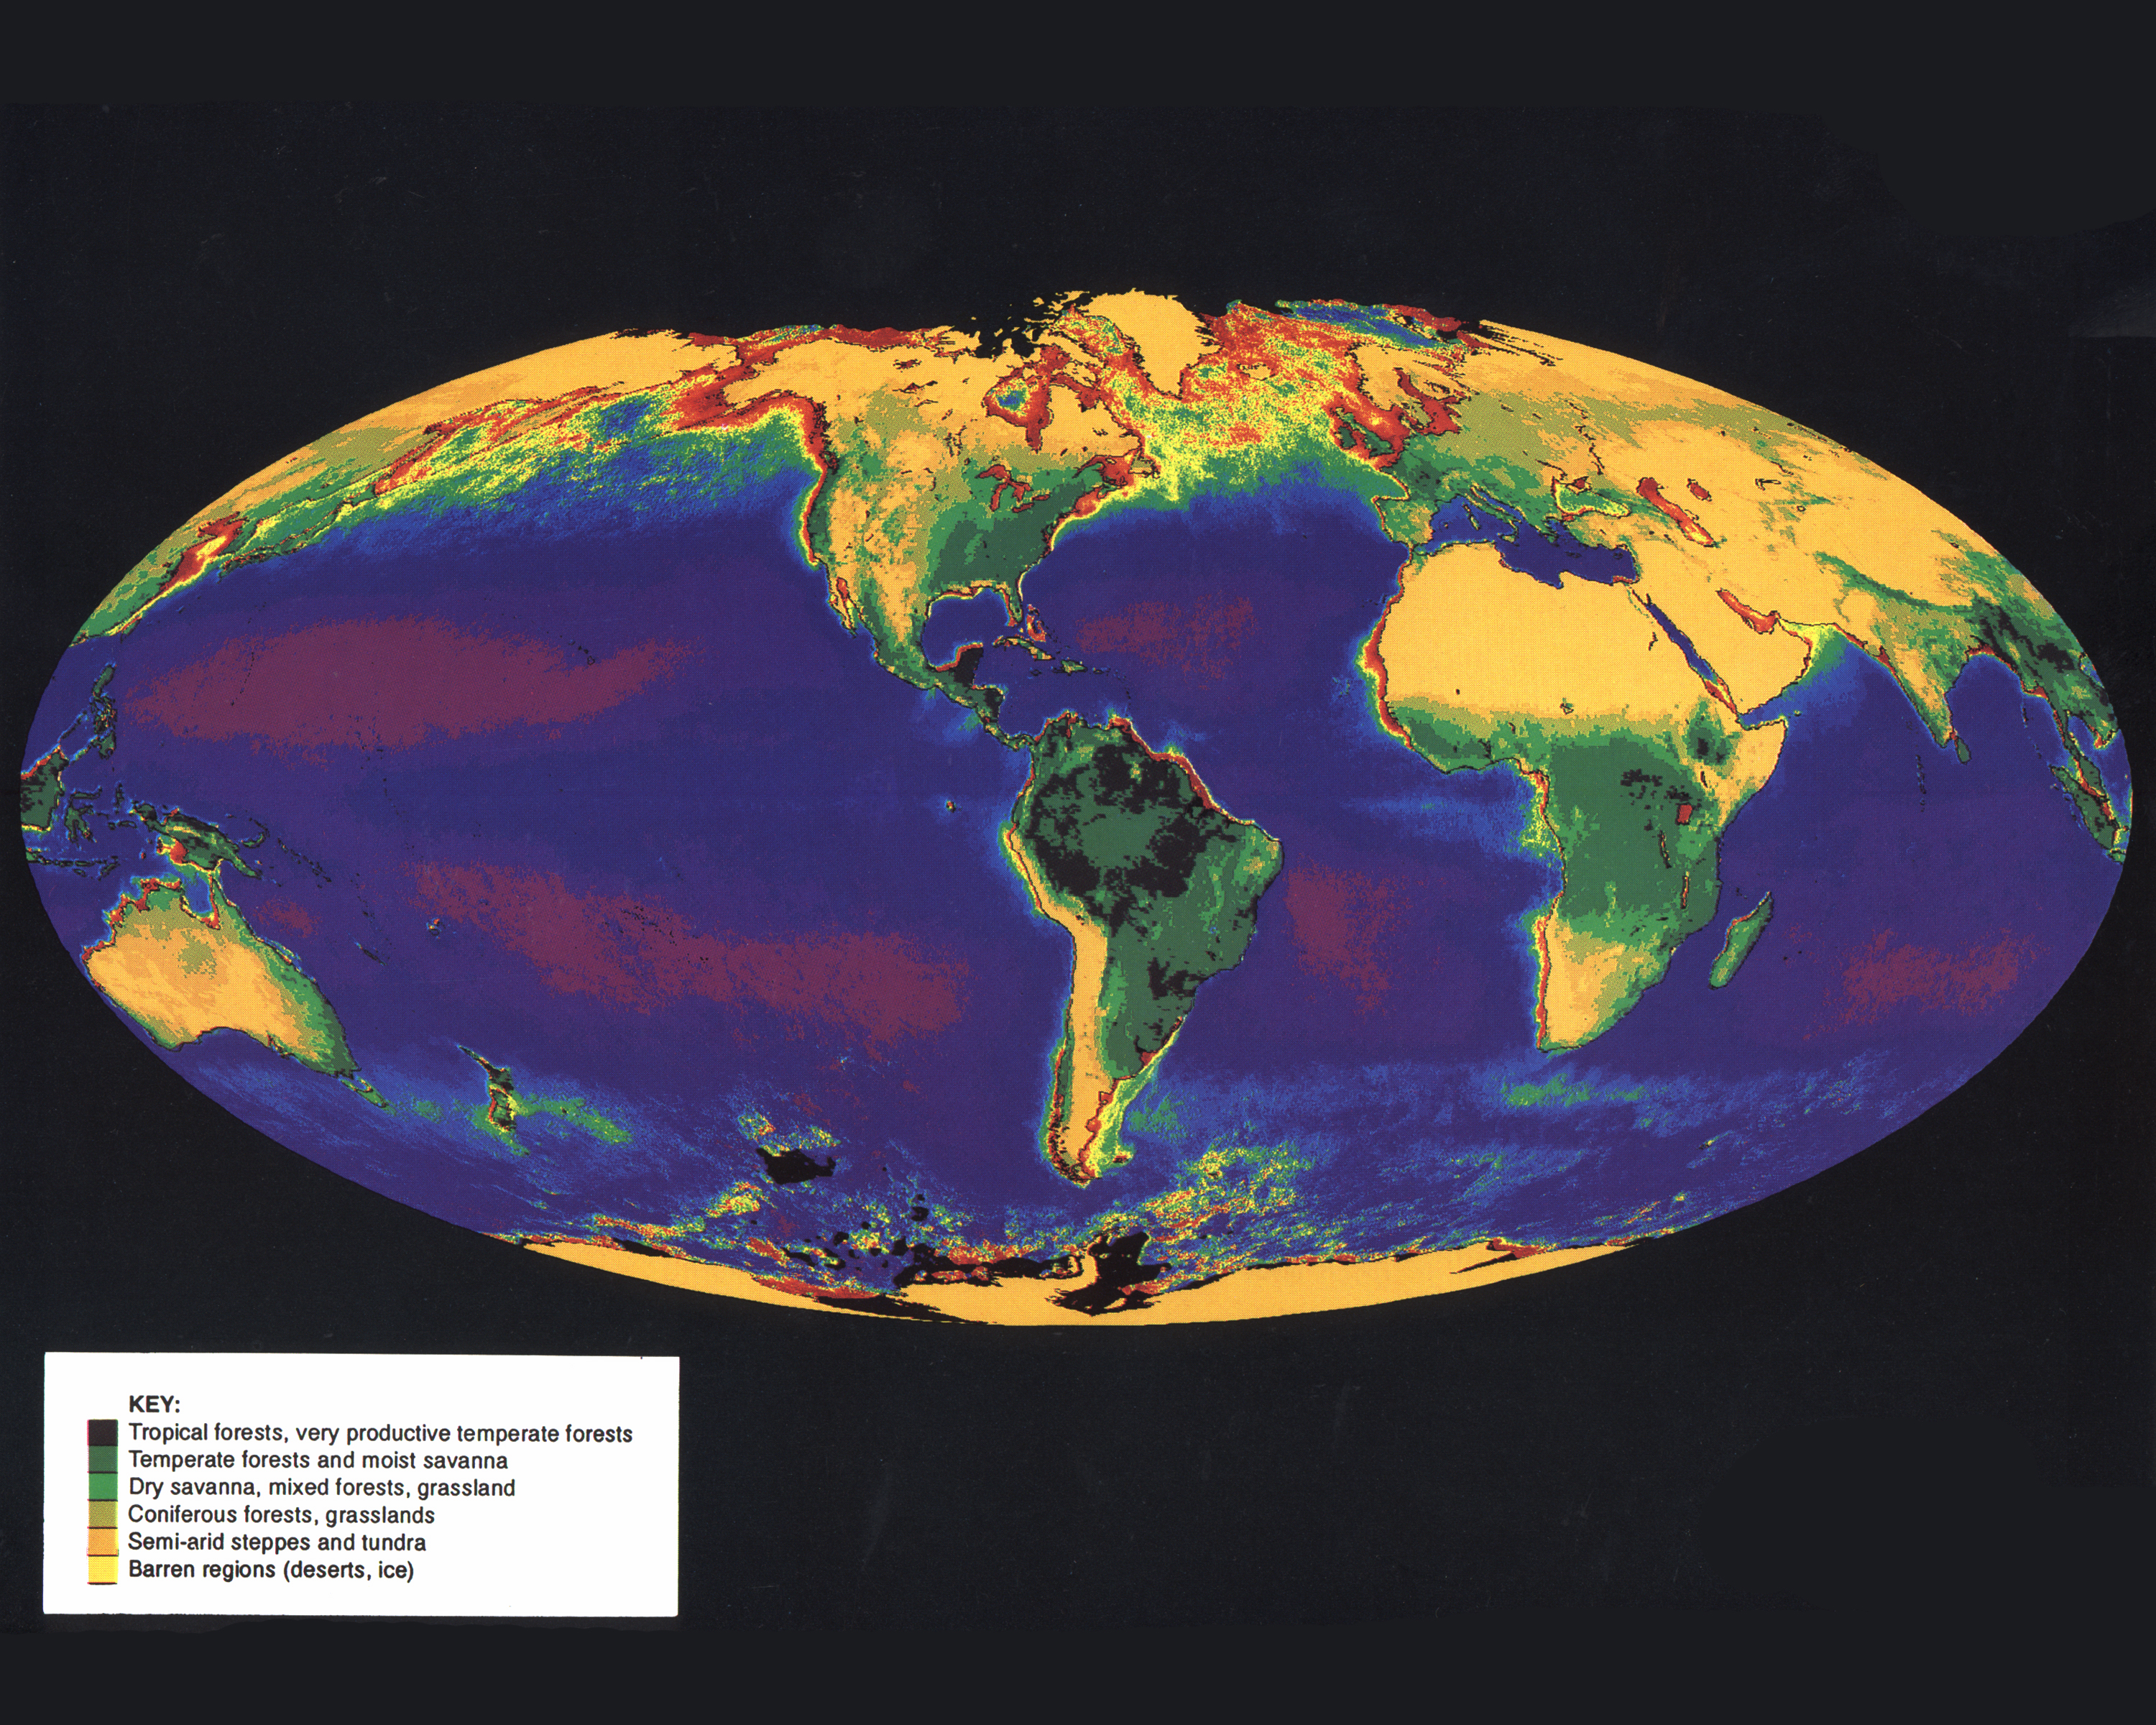 Picture of: World Online Vegetation And Plant Distribution Maps Library Guides At Uc Berkeley